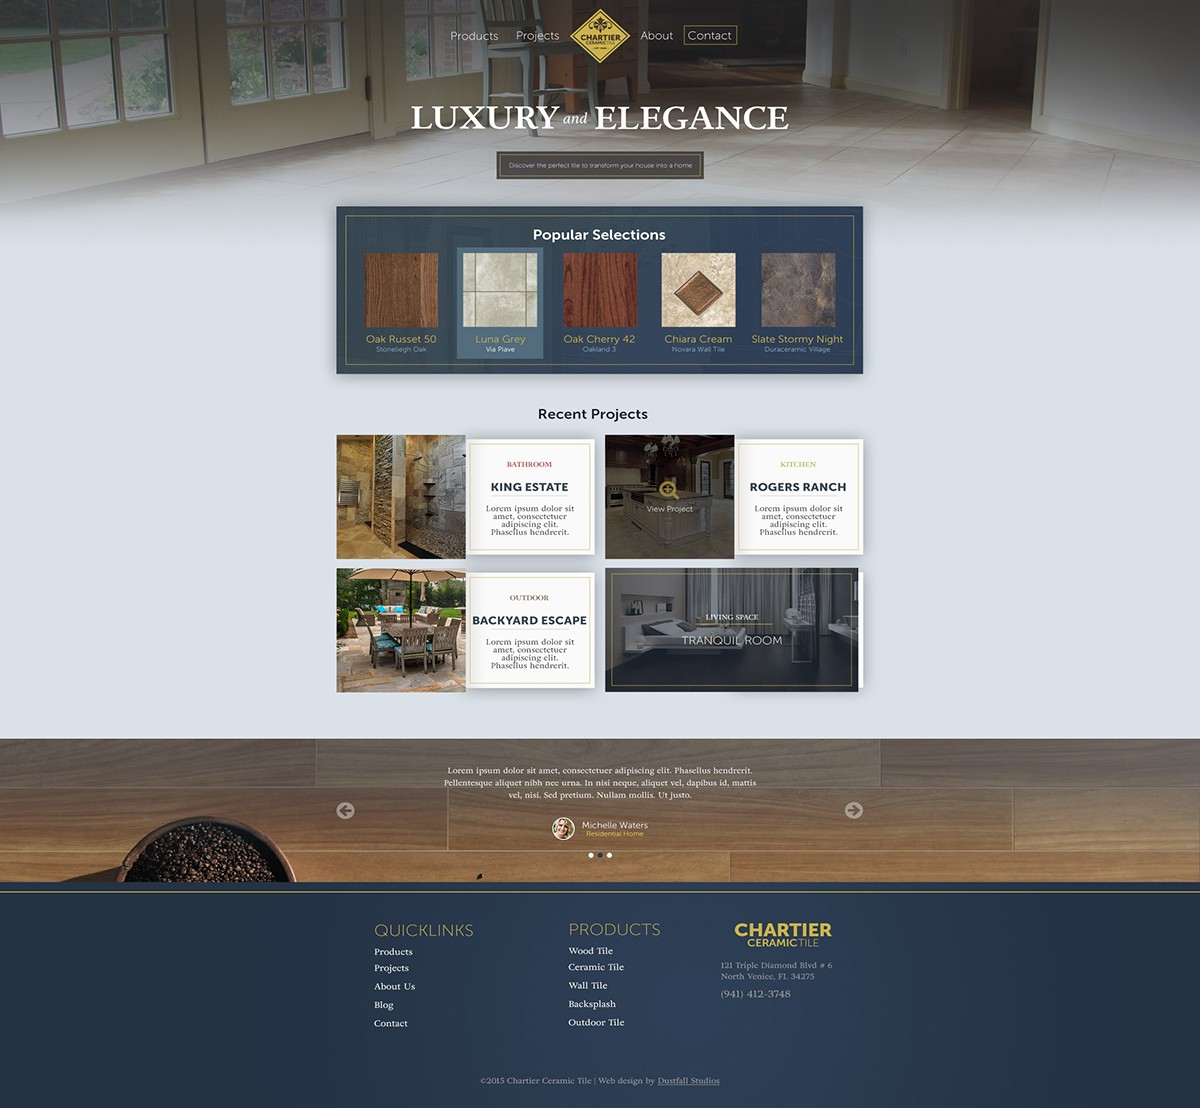 Chartier ceramic tile website homepage design on behance dailygadgetfo Images